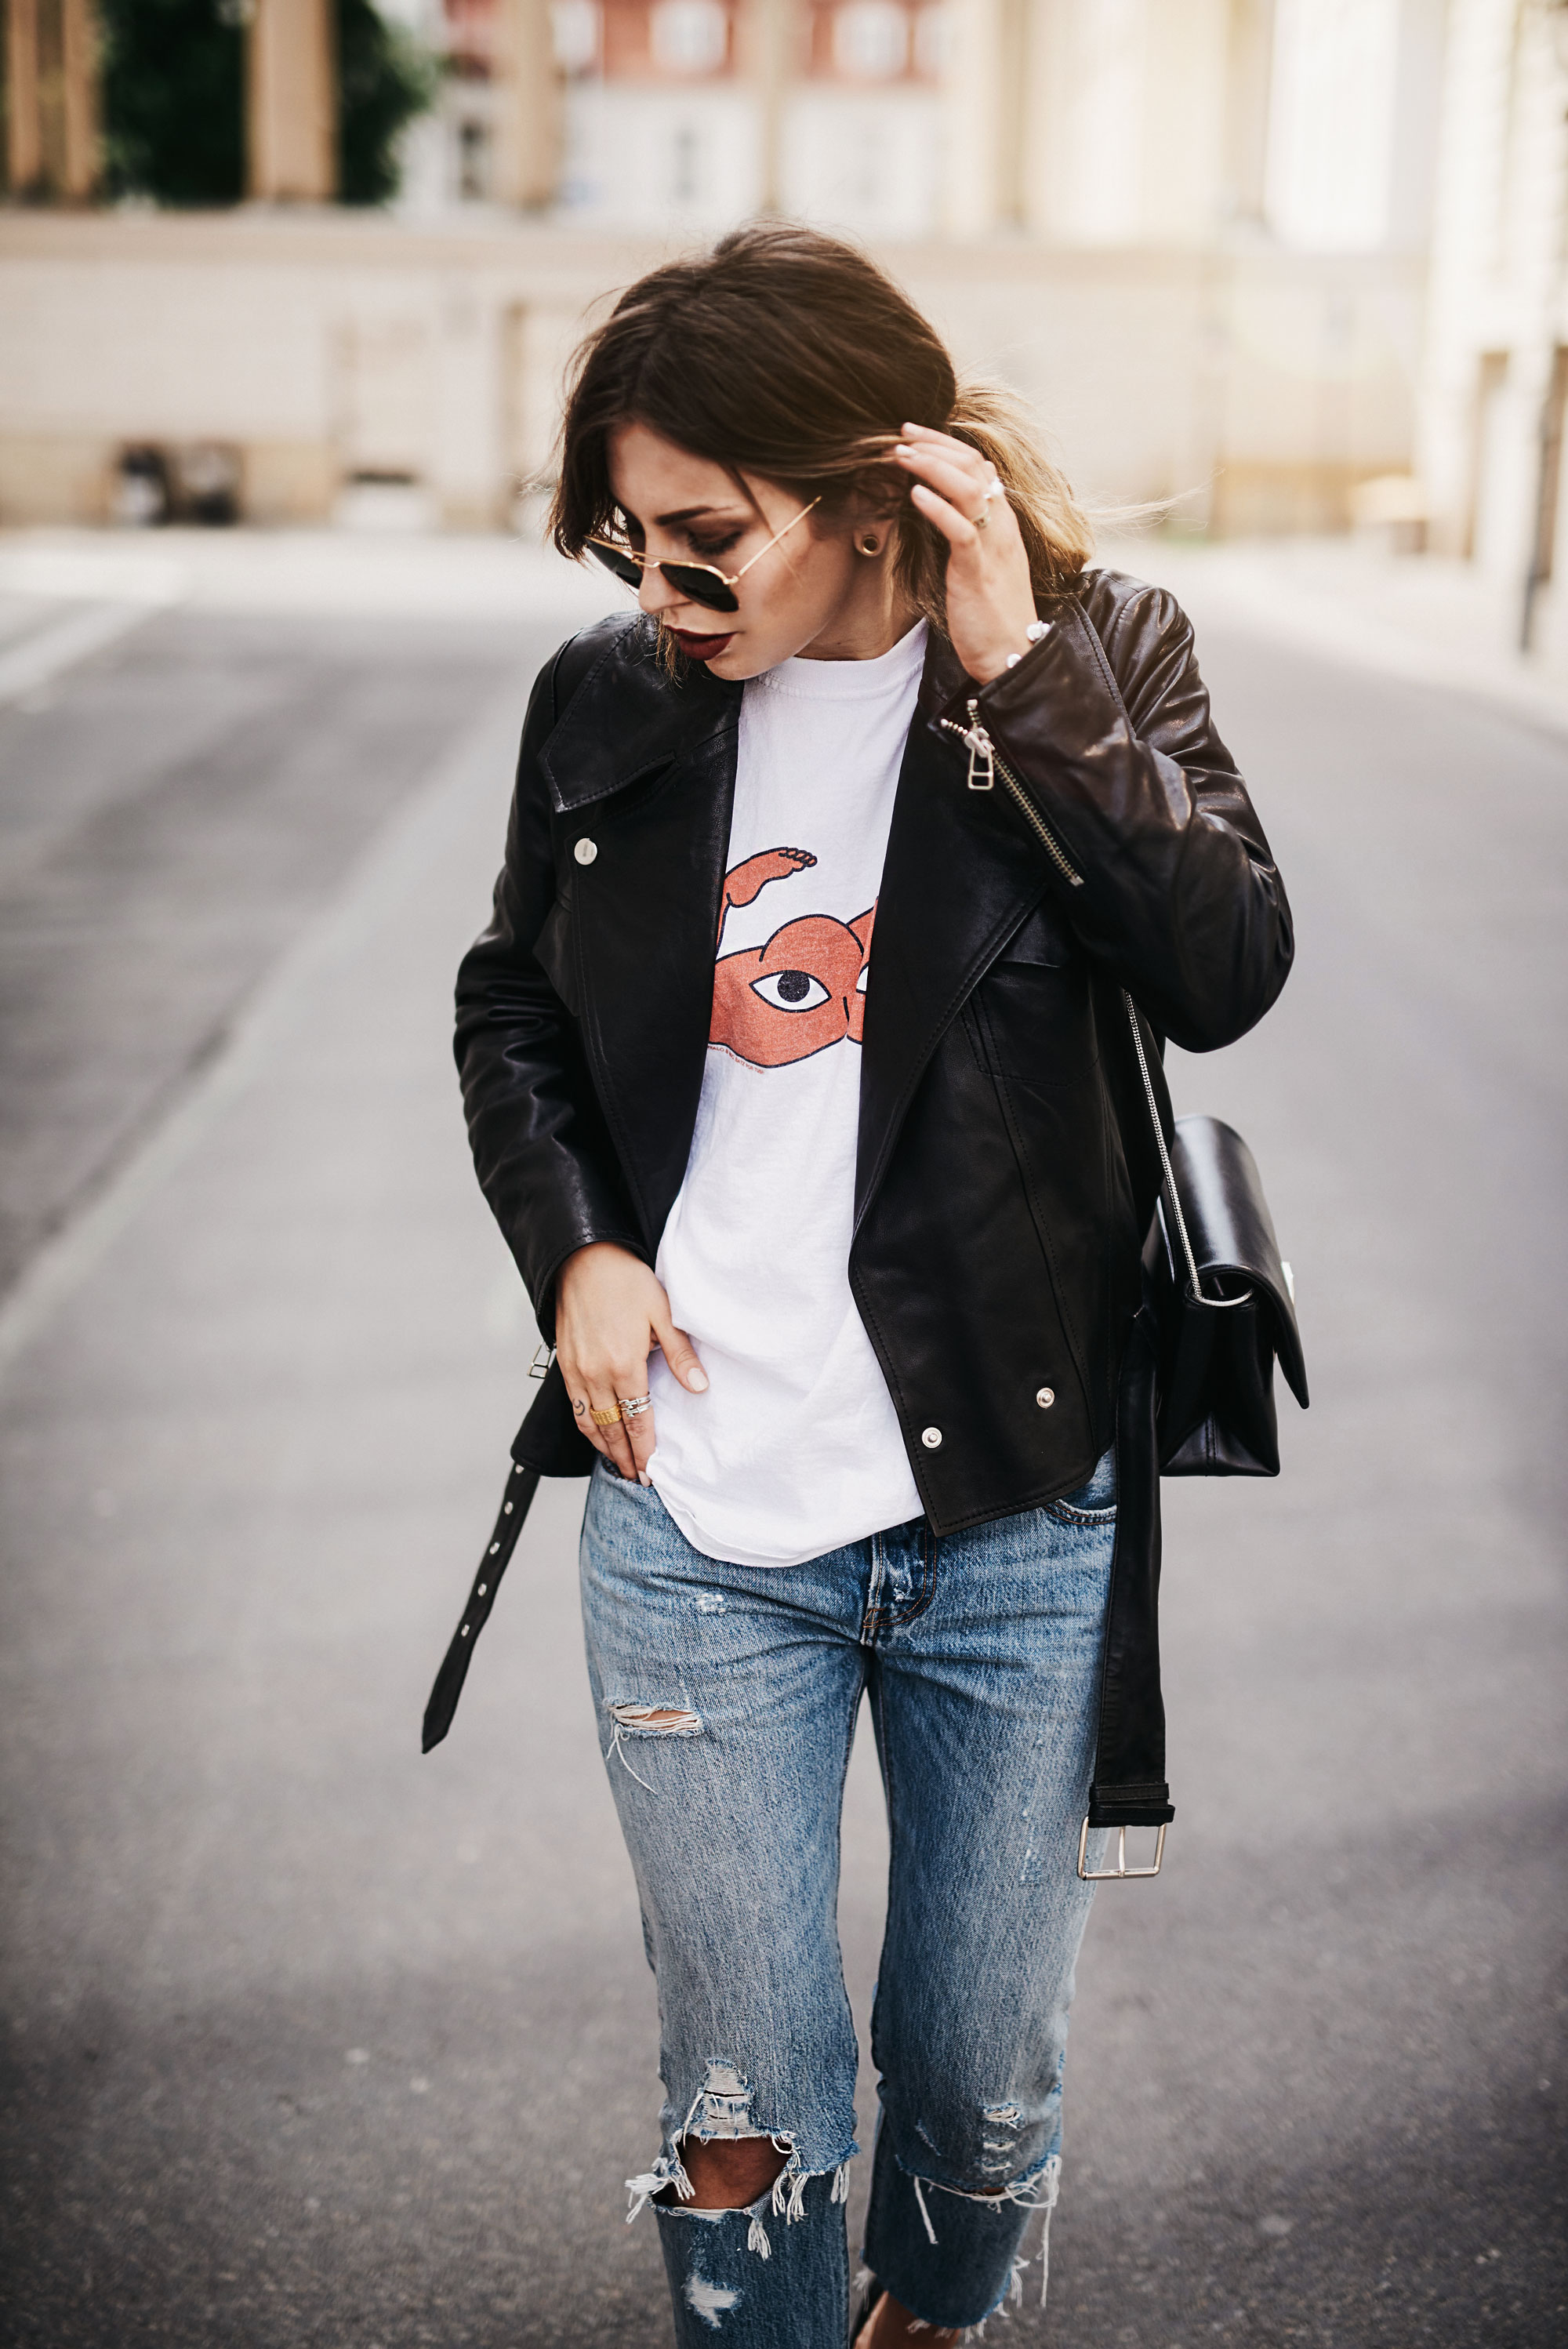 Street Style in Berlin | casual, basic, simple, jeans & tshirt | leather jacket | logo pumps with YSL heel